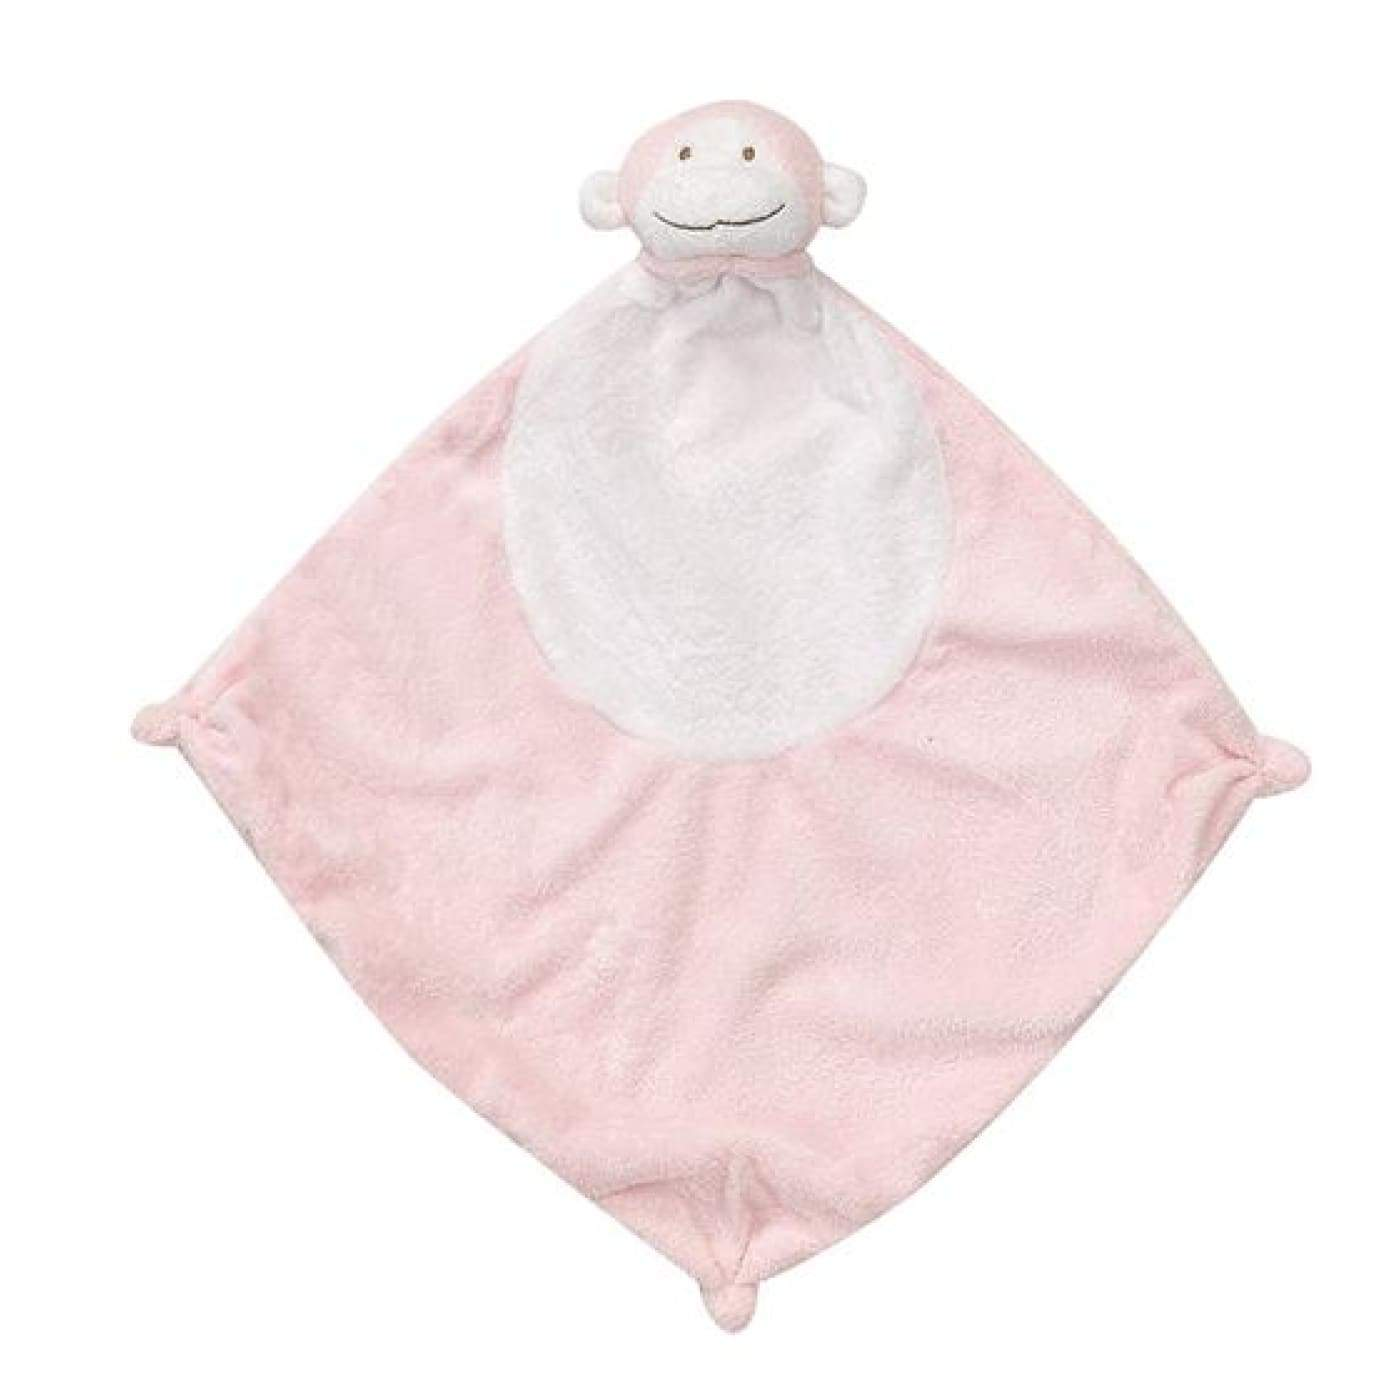 Angel Dear Blankie - Pink Monkey - TOYS & PLAY - BLANKIES/COMFORTERS/RATTLES